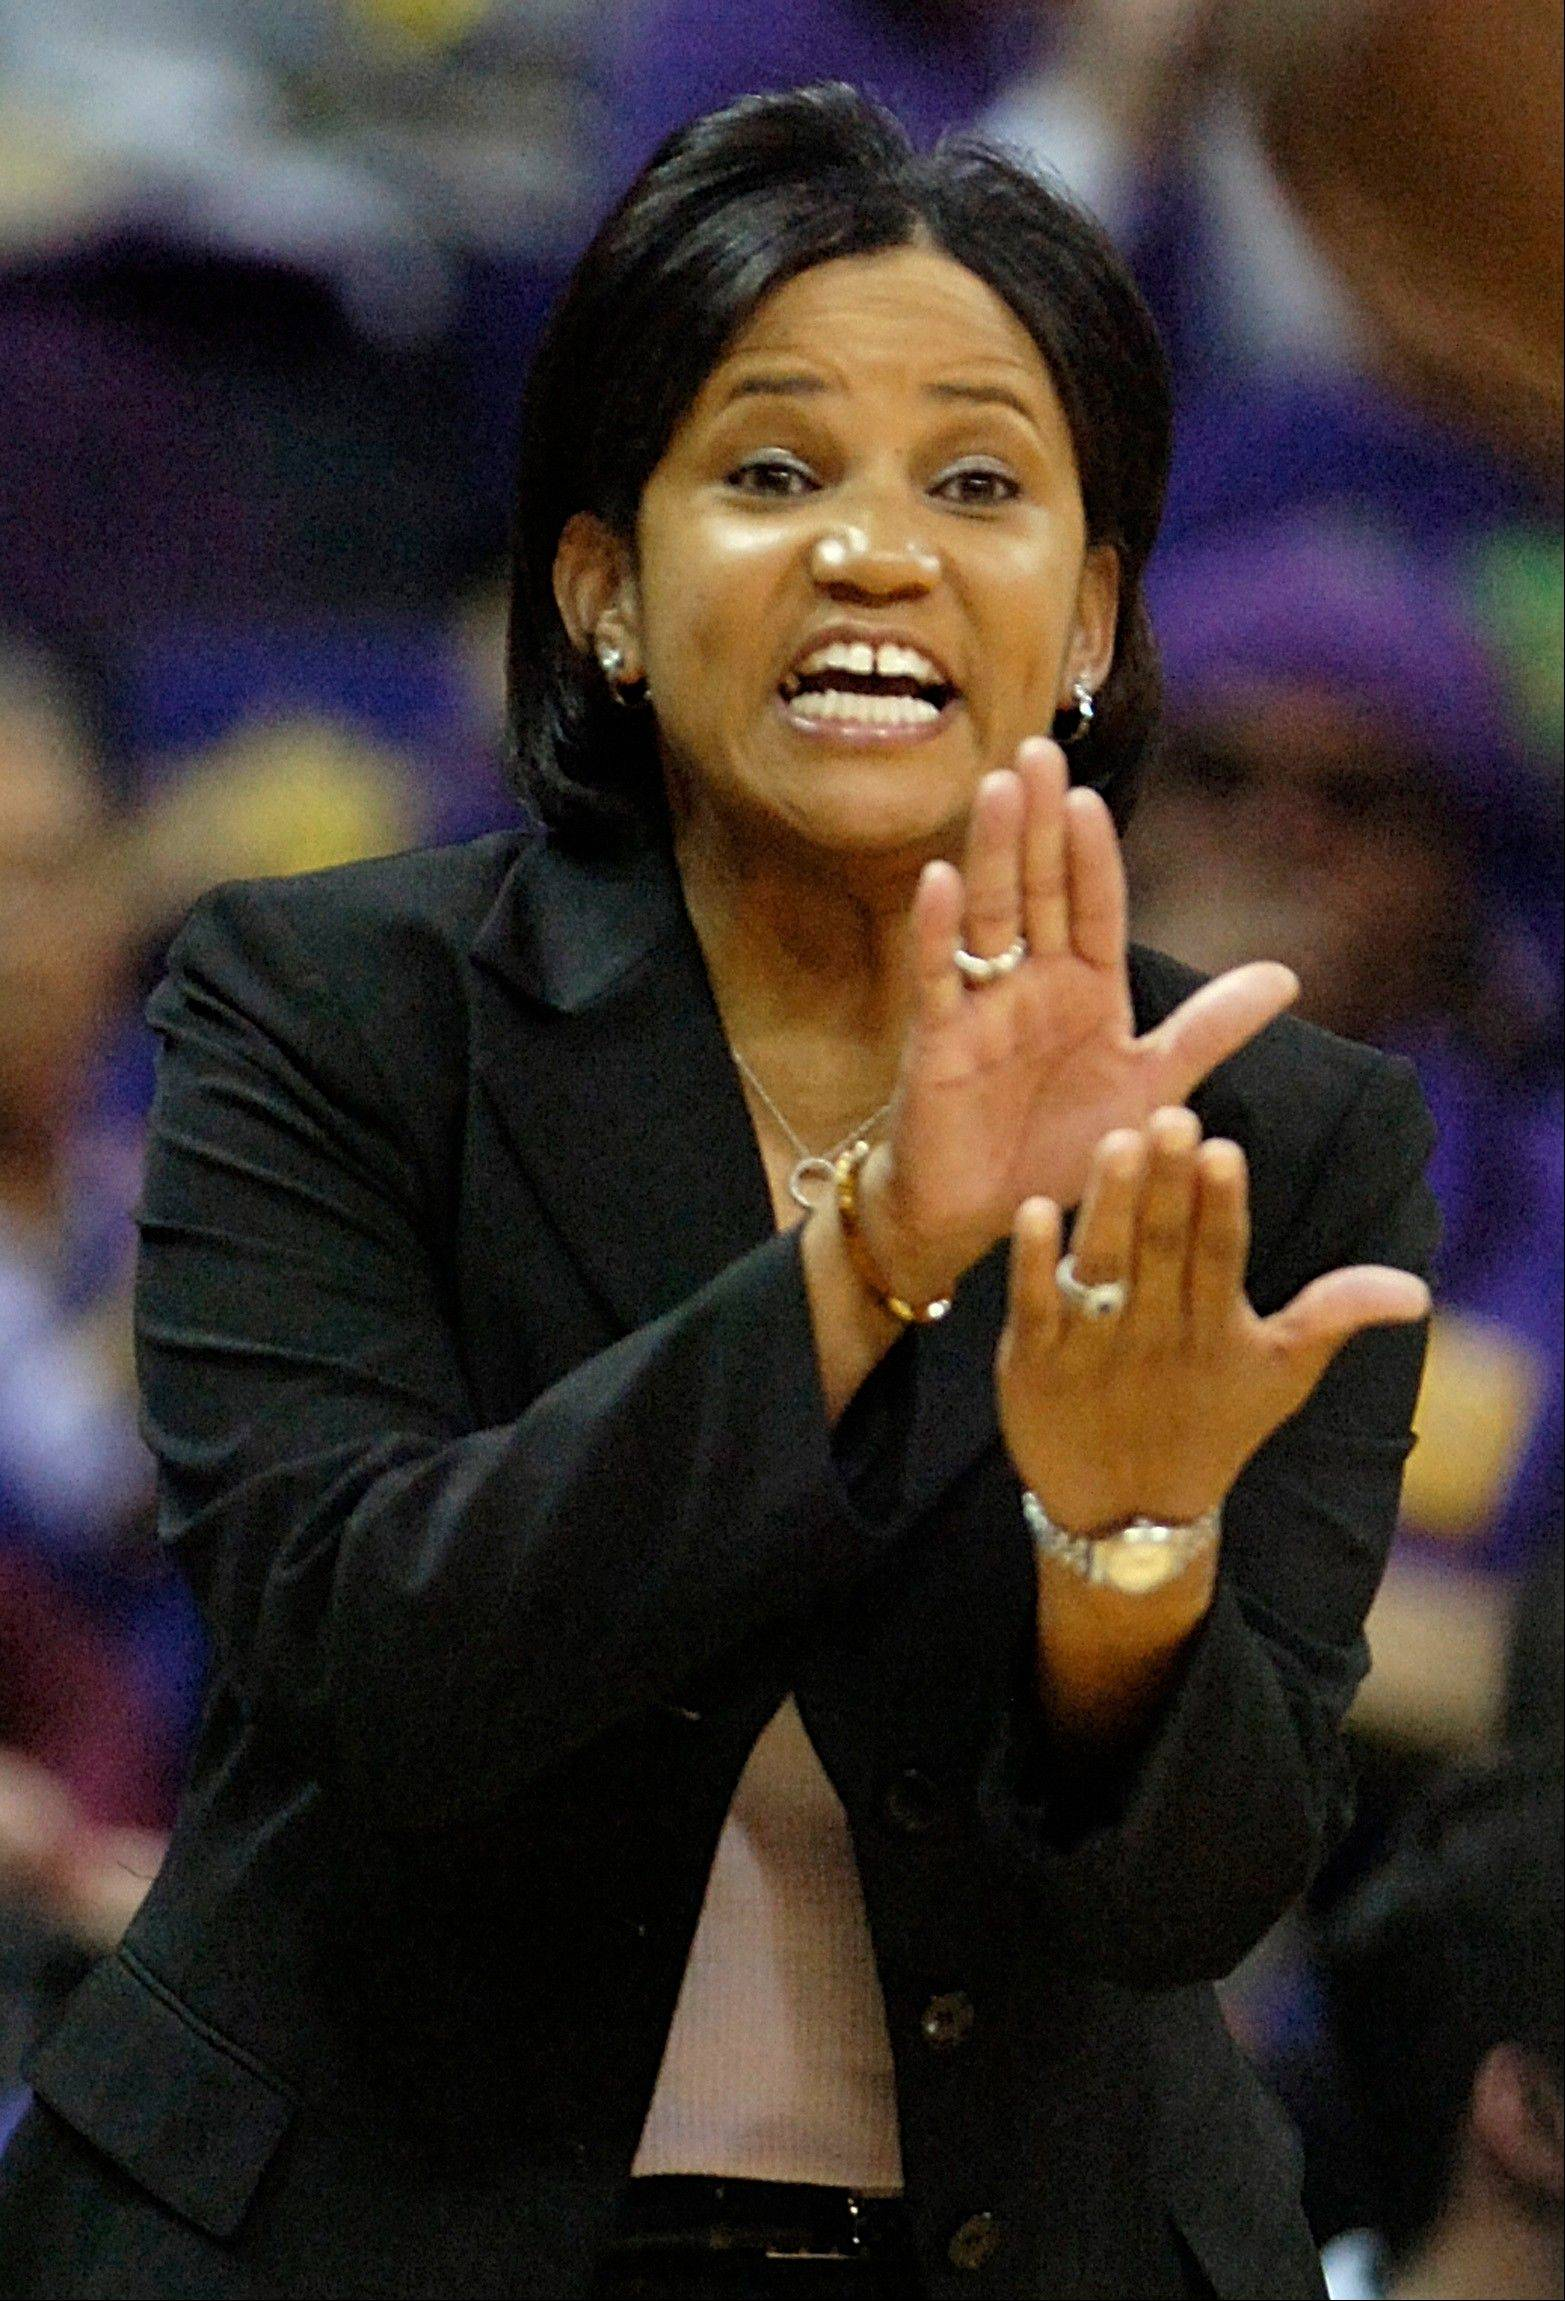 The Chicago Sky today announced the team has signed head coach and general manager Pokey Chatman to a multiyear contract extension.